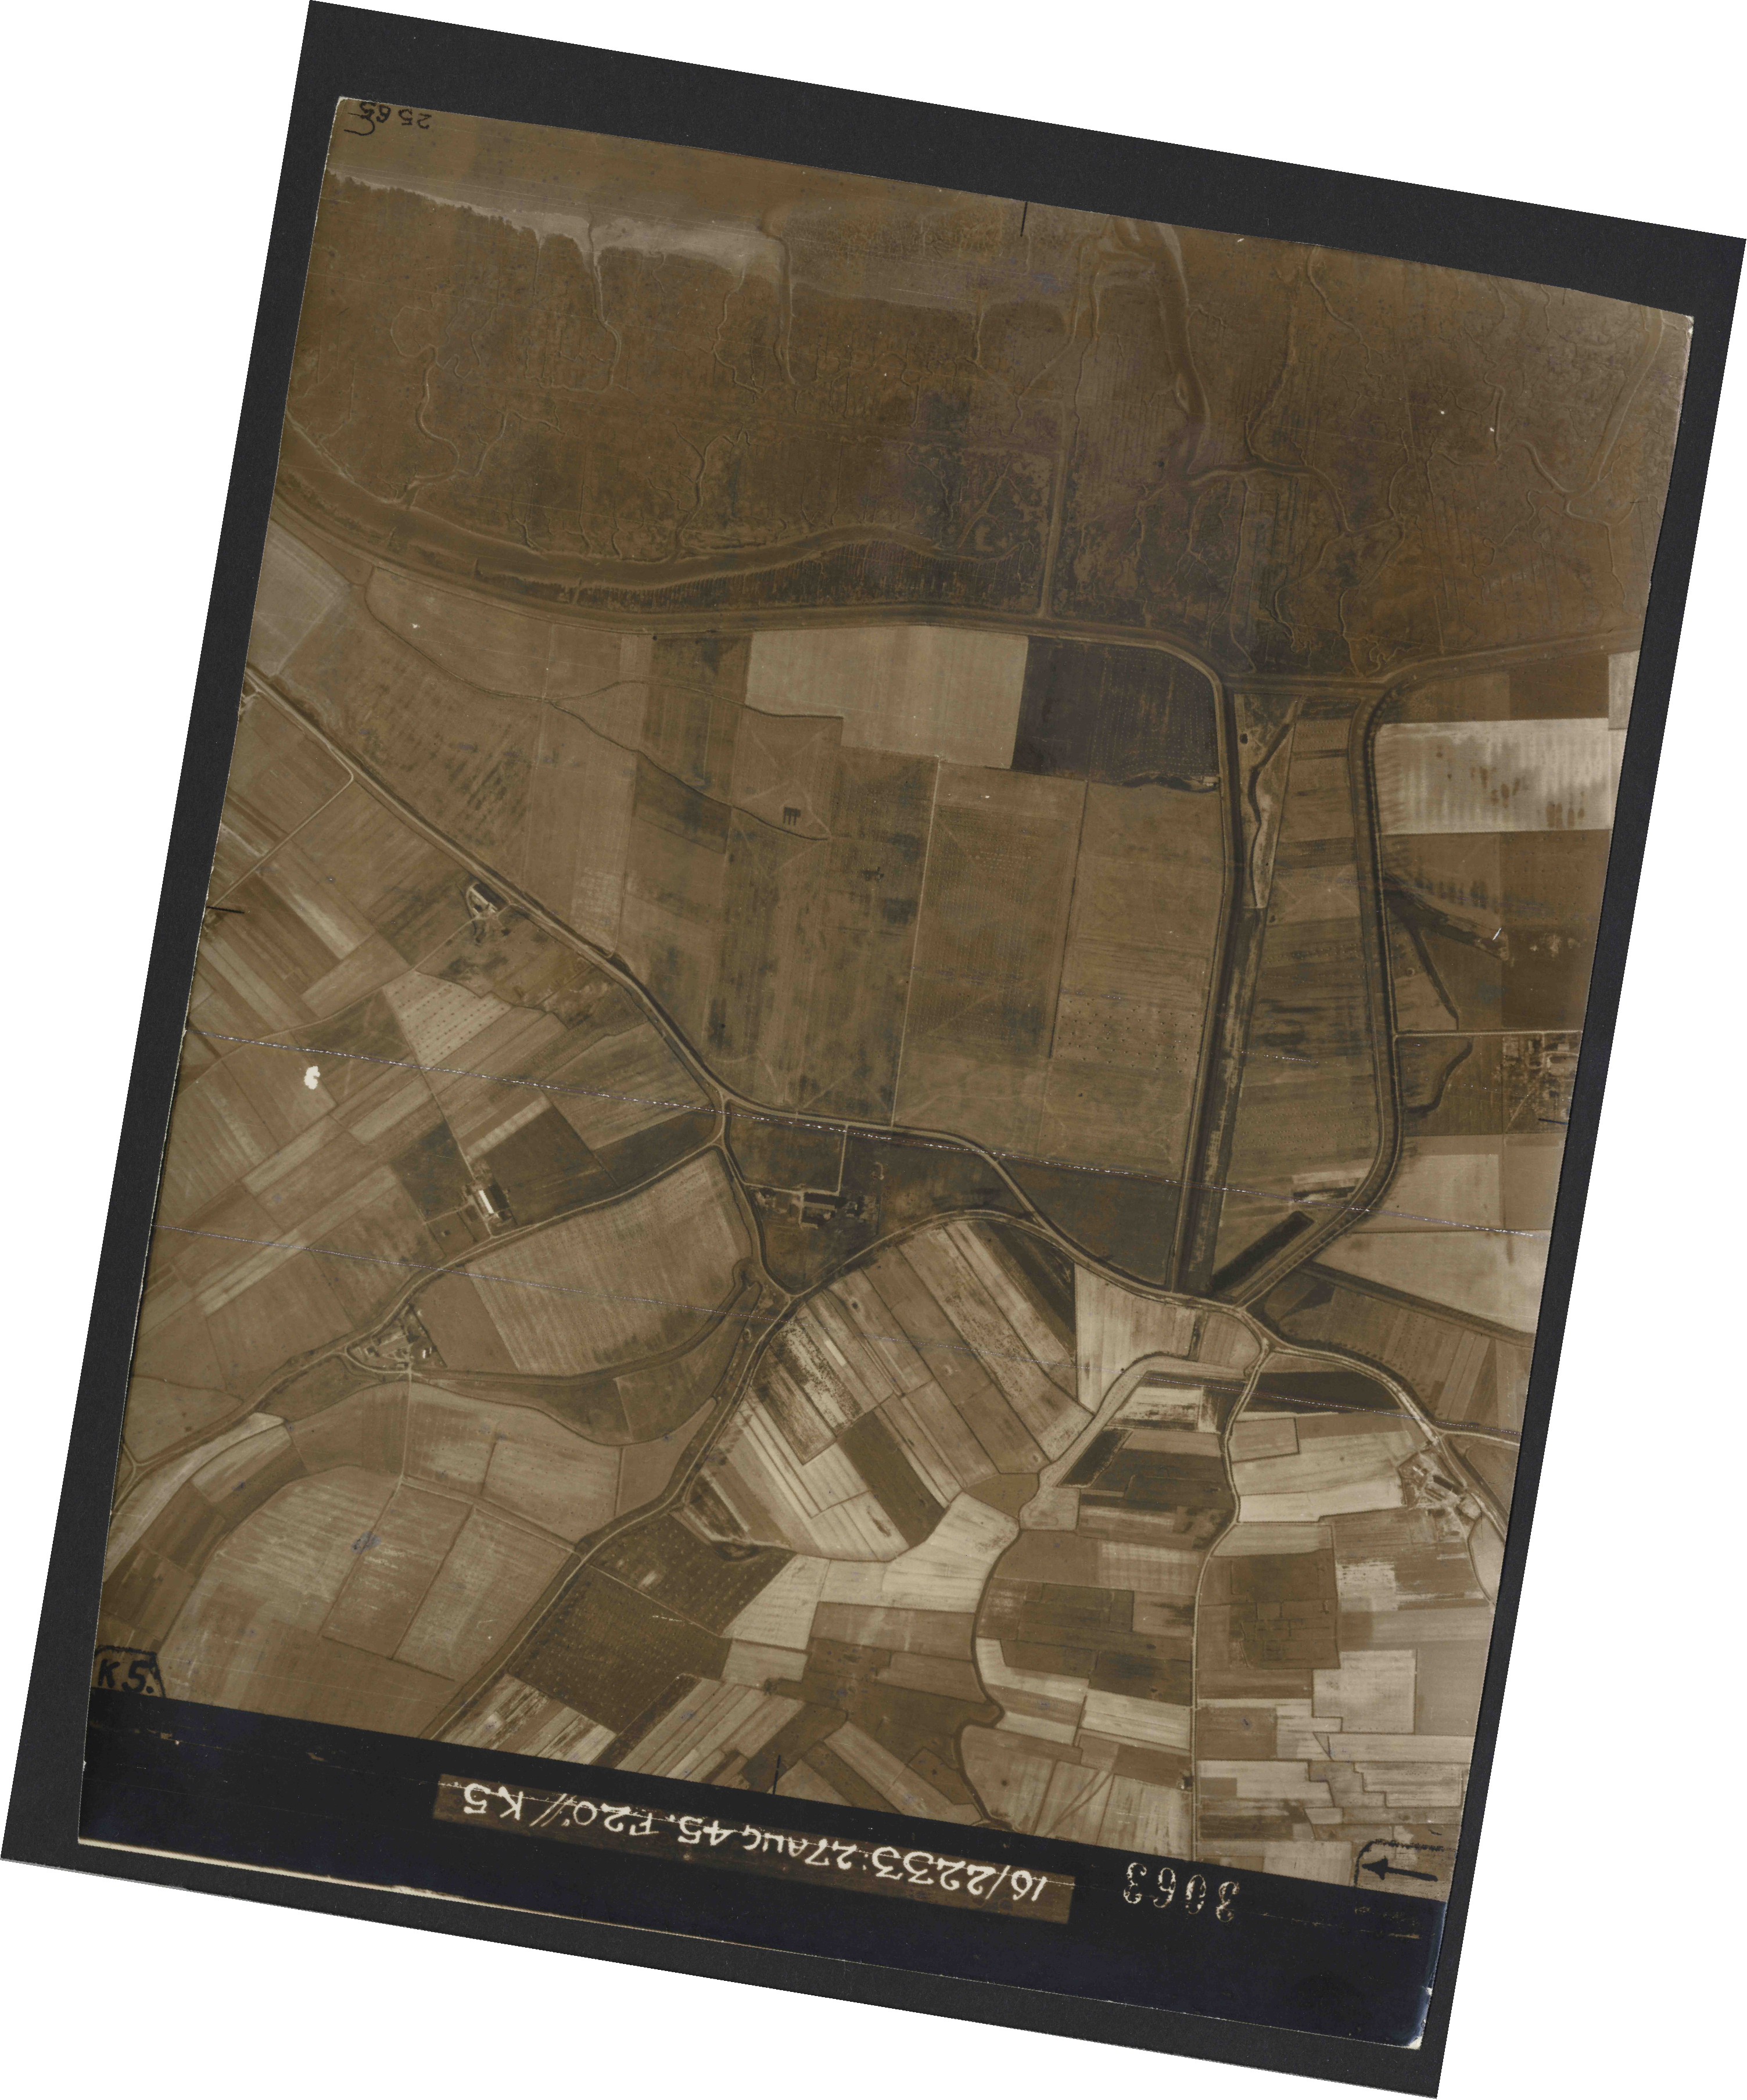 Collection RAF aerial photos 1940-1945 - flight 034, run 08, photo 3063